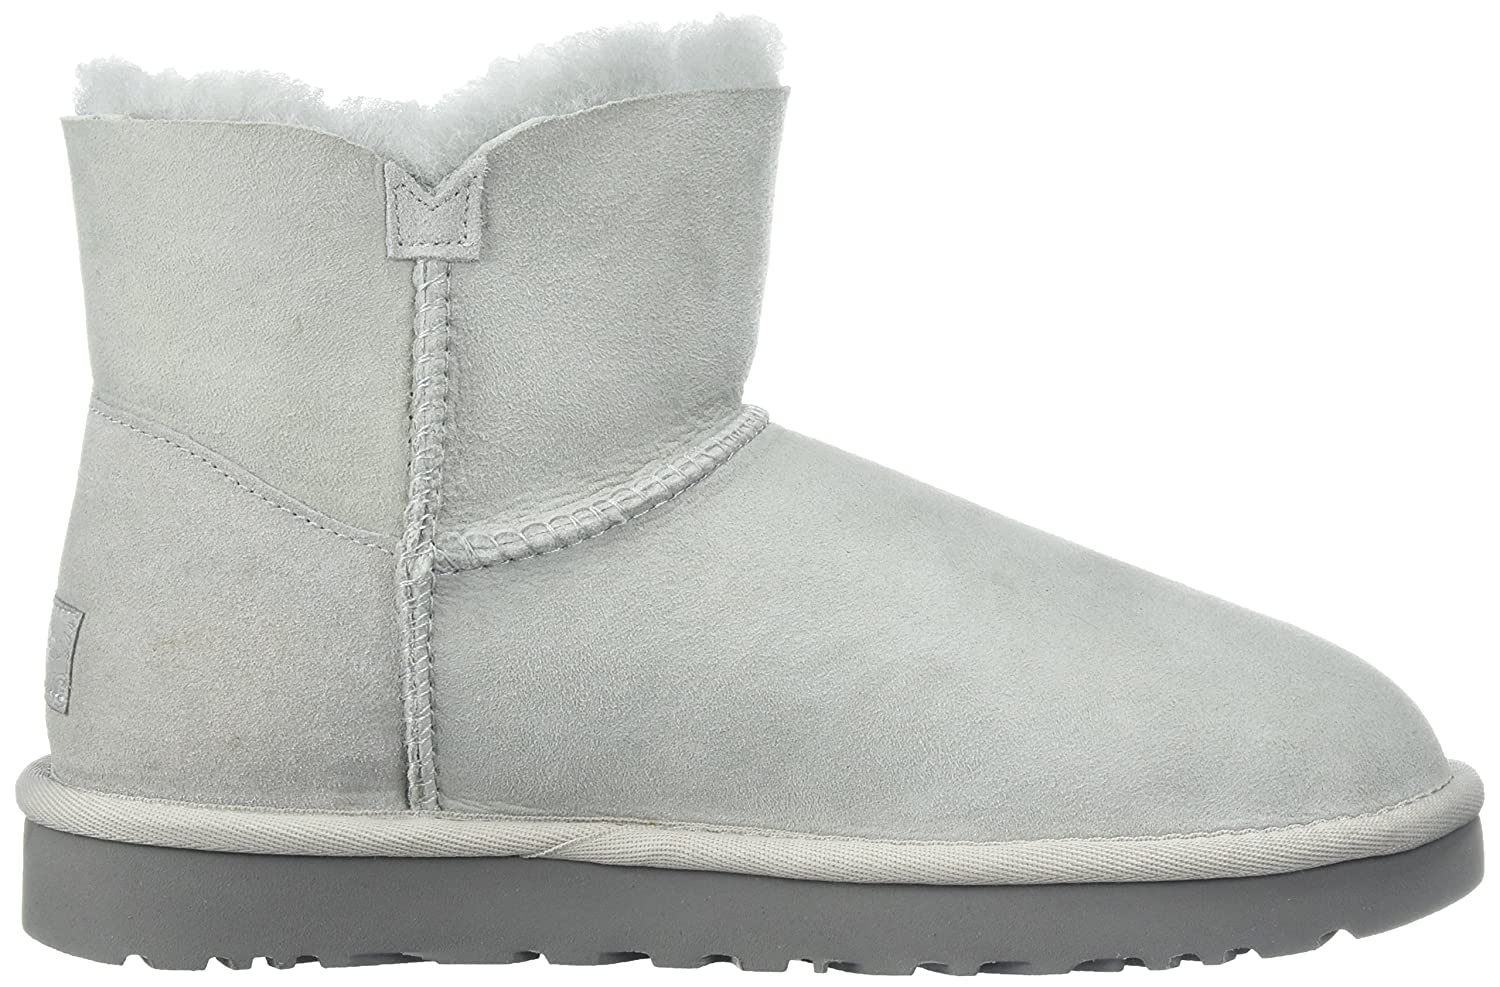 c976dfd89ec Amazon.com | UGG Women's Josey Winter Boot, Grey Violet, 11 M US ...